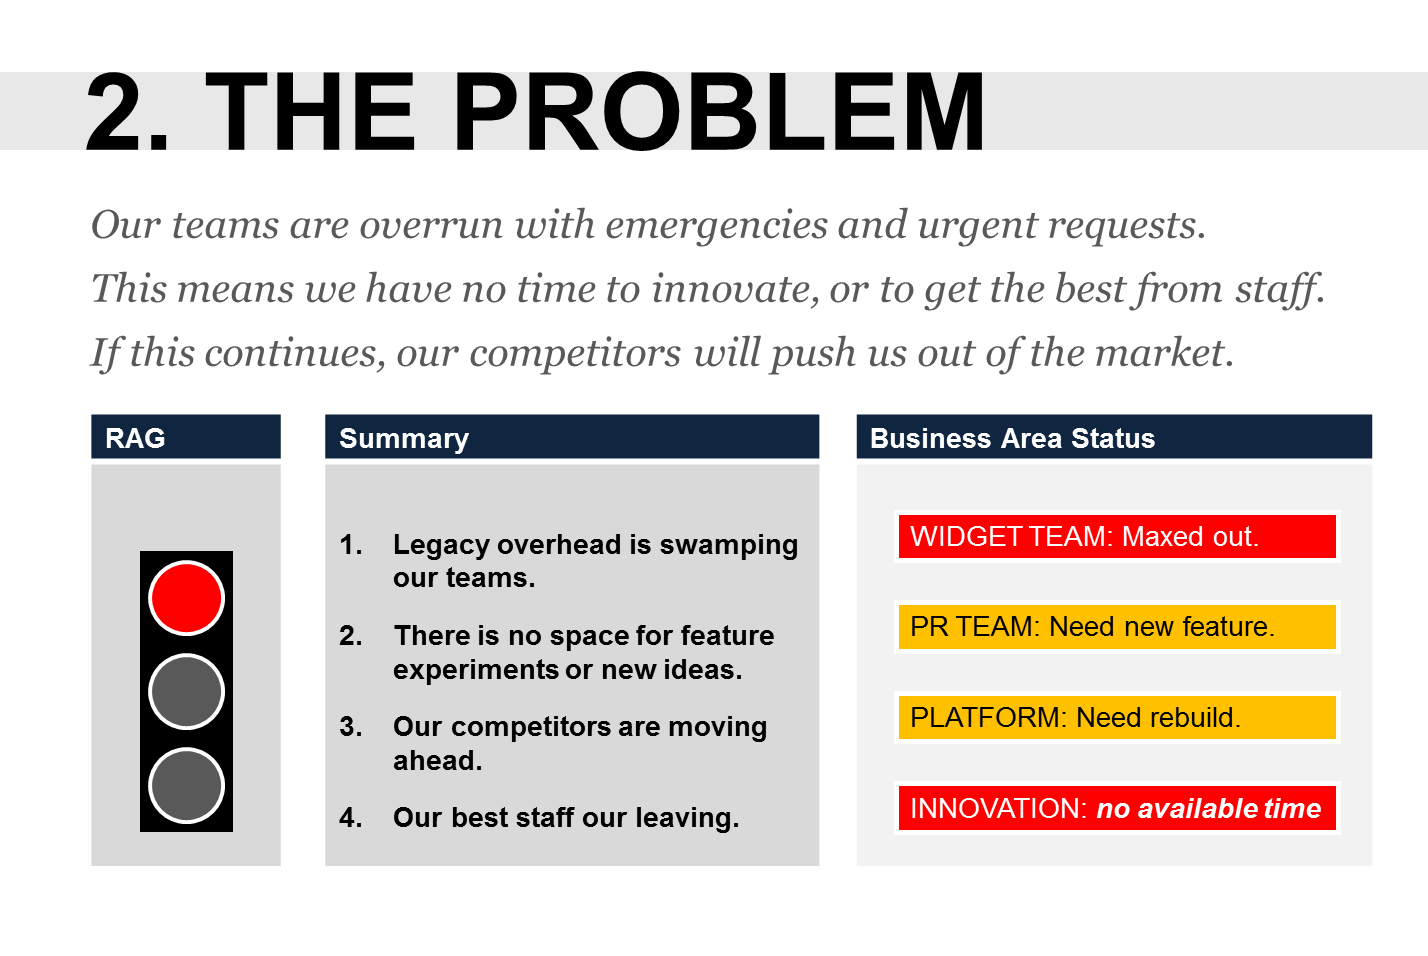 problem statement The problem statement serves several purposes in a six sigma project first, it significantly clarifies the current situation by specifically identifying the problem and its severity, location, and financial impact it also serves as a great communication tool, helping to get buy-in and support from others when problem statements are well written, people readily grasp [.